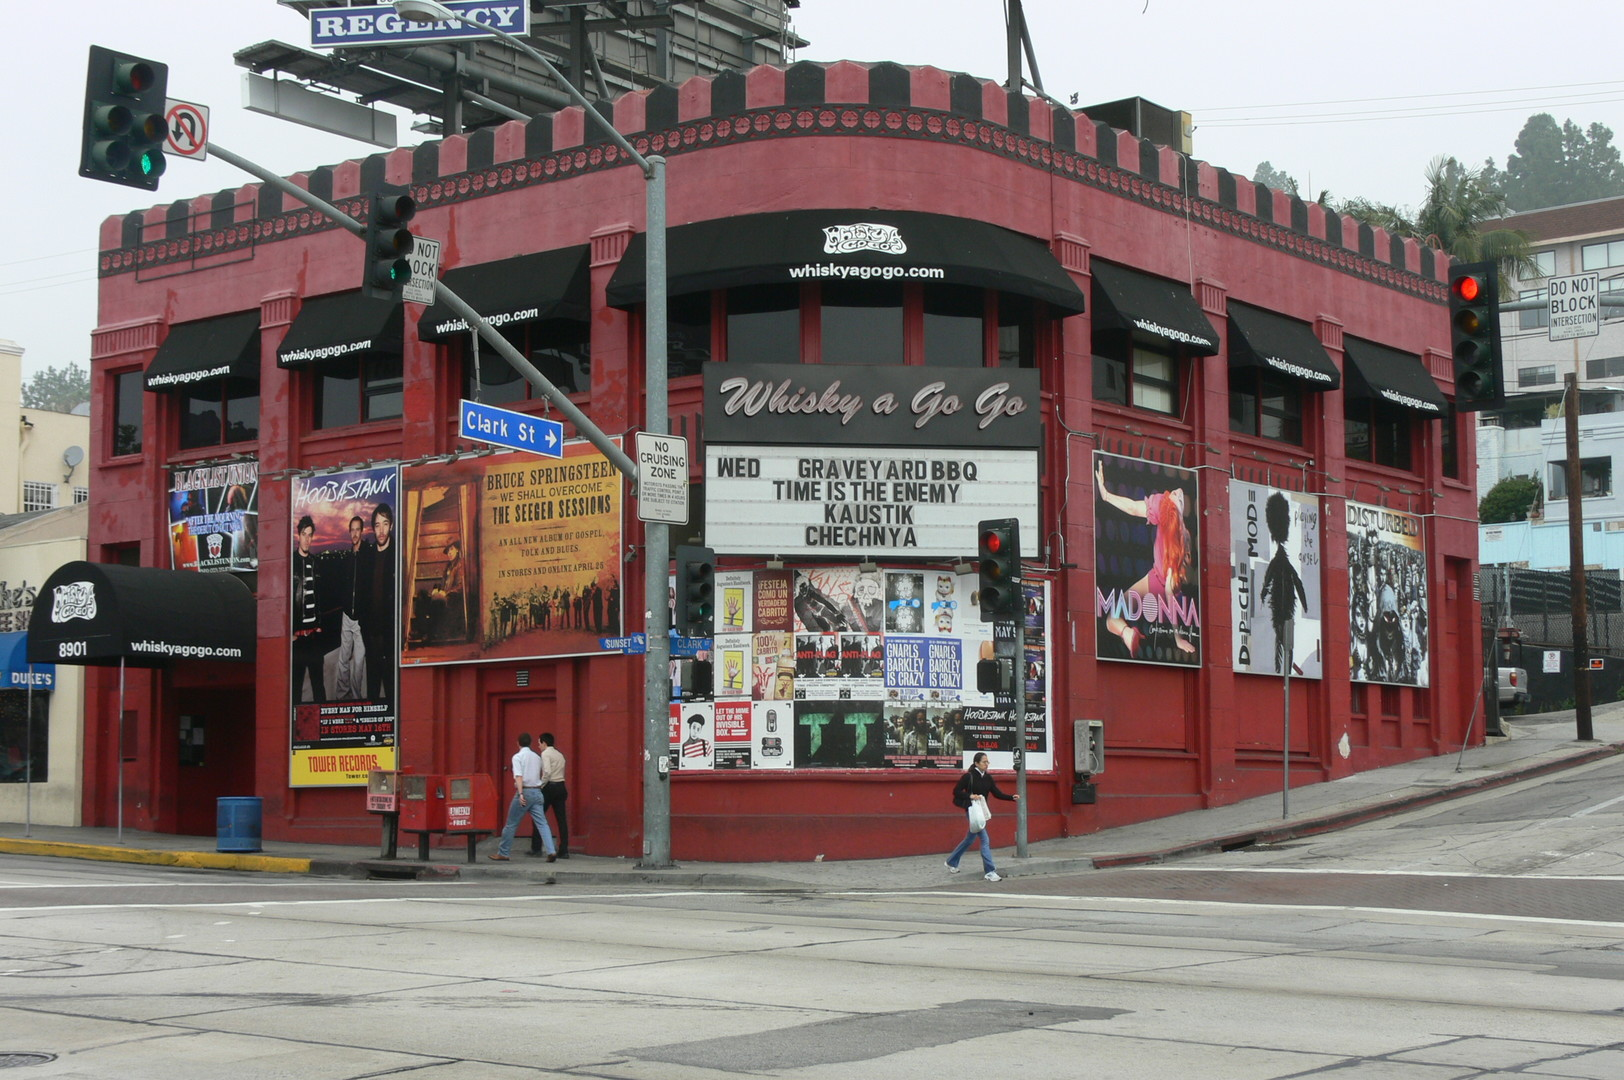 The Whisky-A-Go-Go has seen better days, but it still has the potential to be one of the most fun and intimate venues in L.A. (Wikimedia Commons)